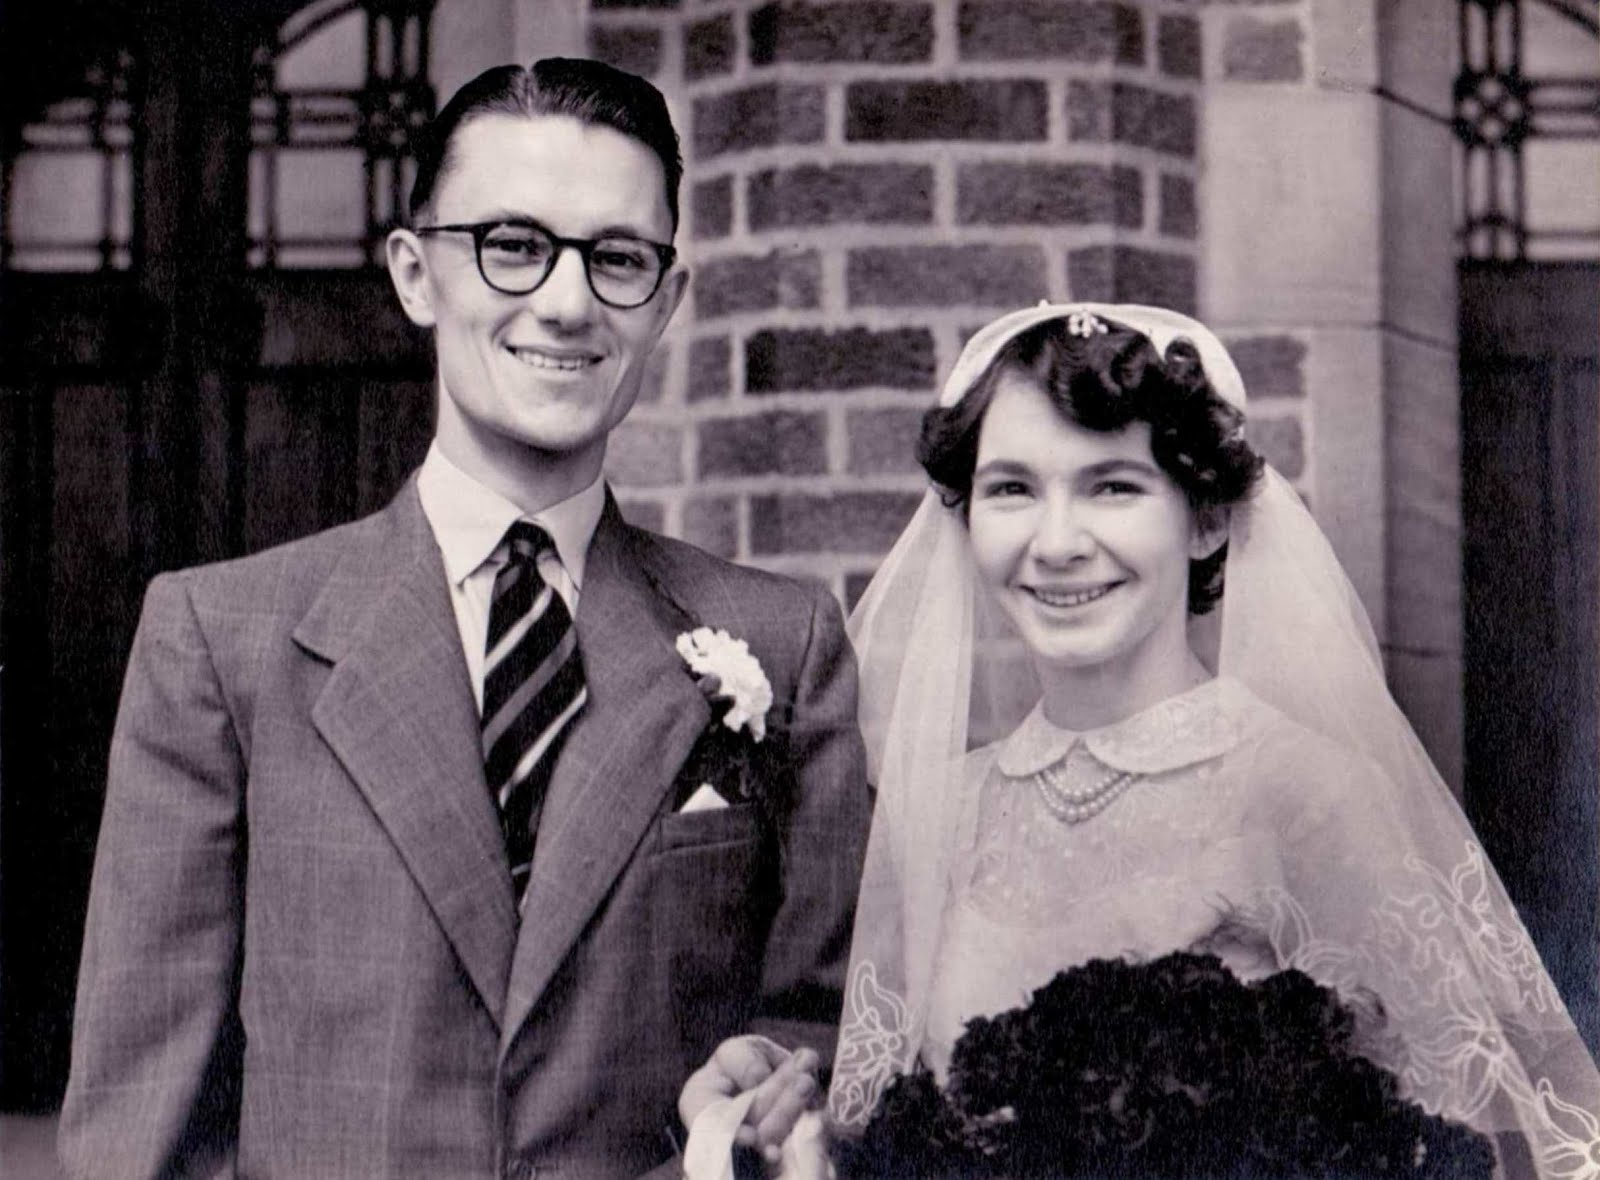 Eric and Pauline Slater